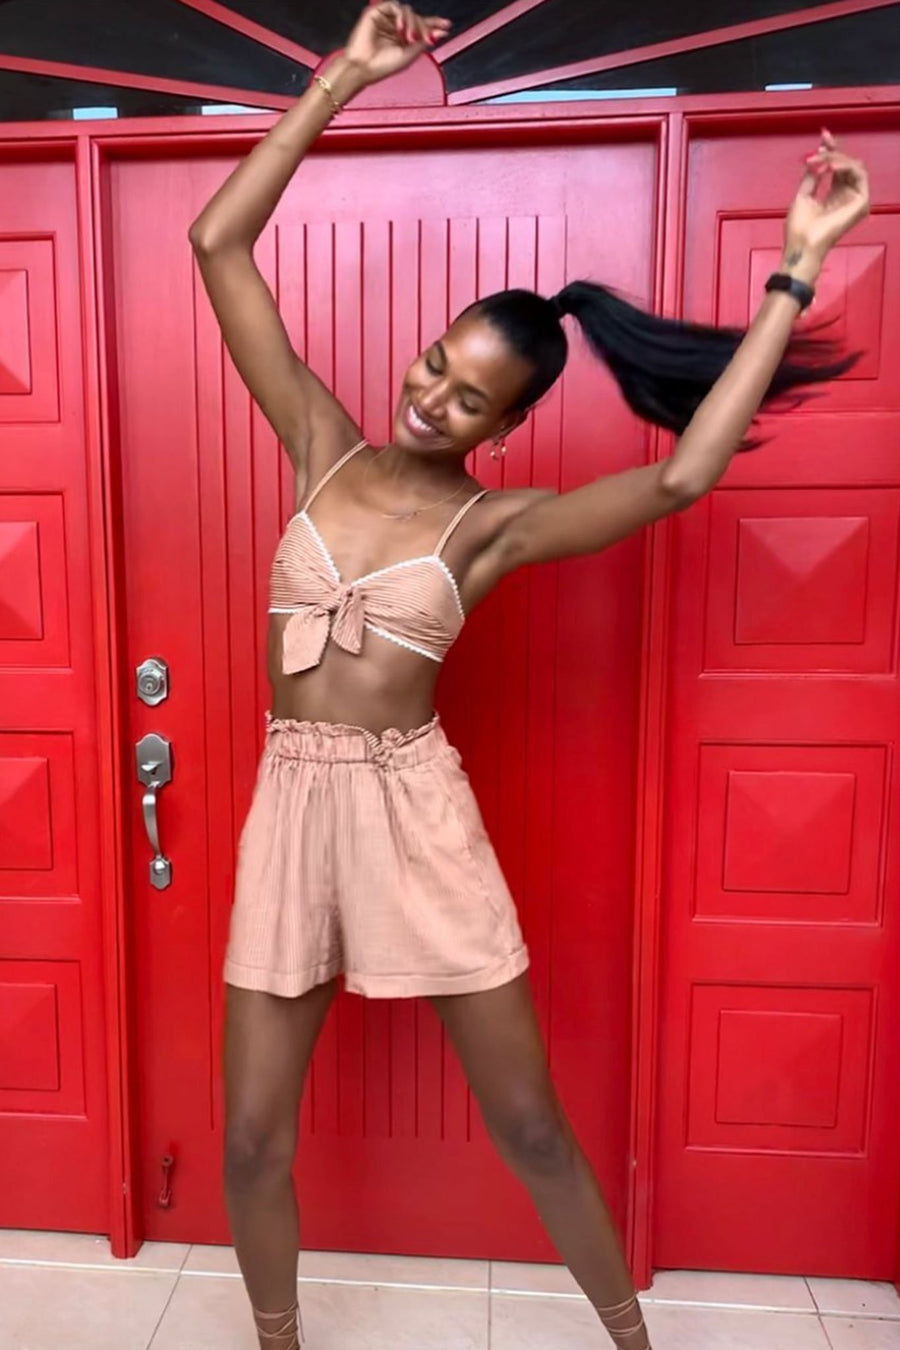 This is a photo of a woman dancing with her arms in the air, wearing a high waisted pair of venetian striped shorts and matching bralette. She stands in front of a red door.